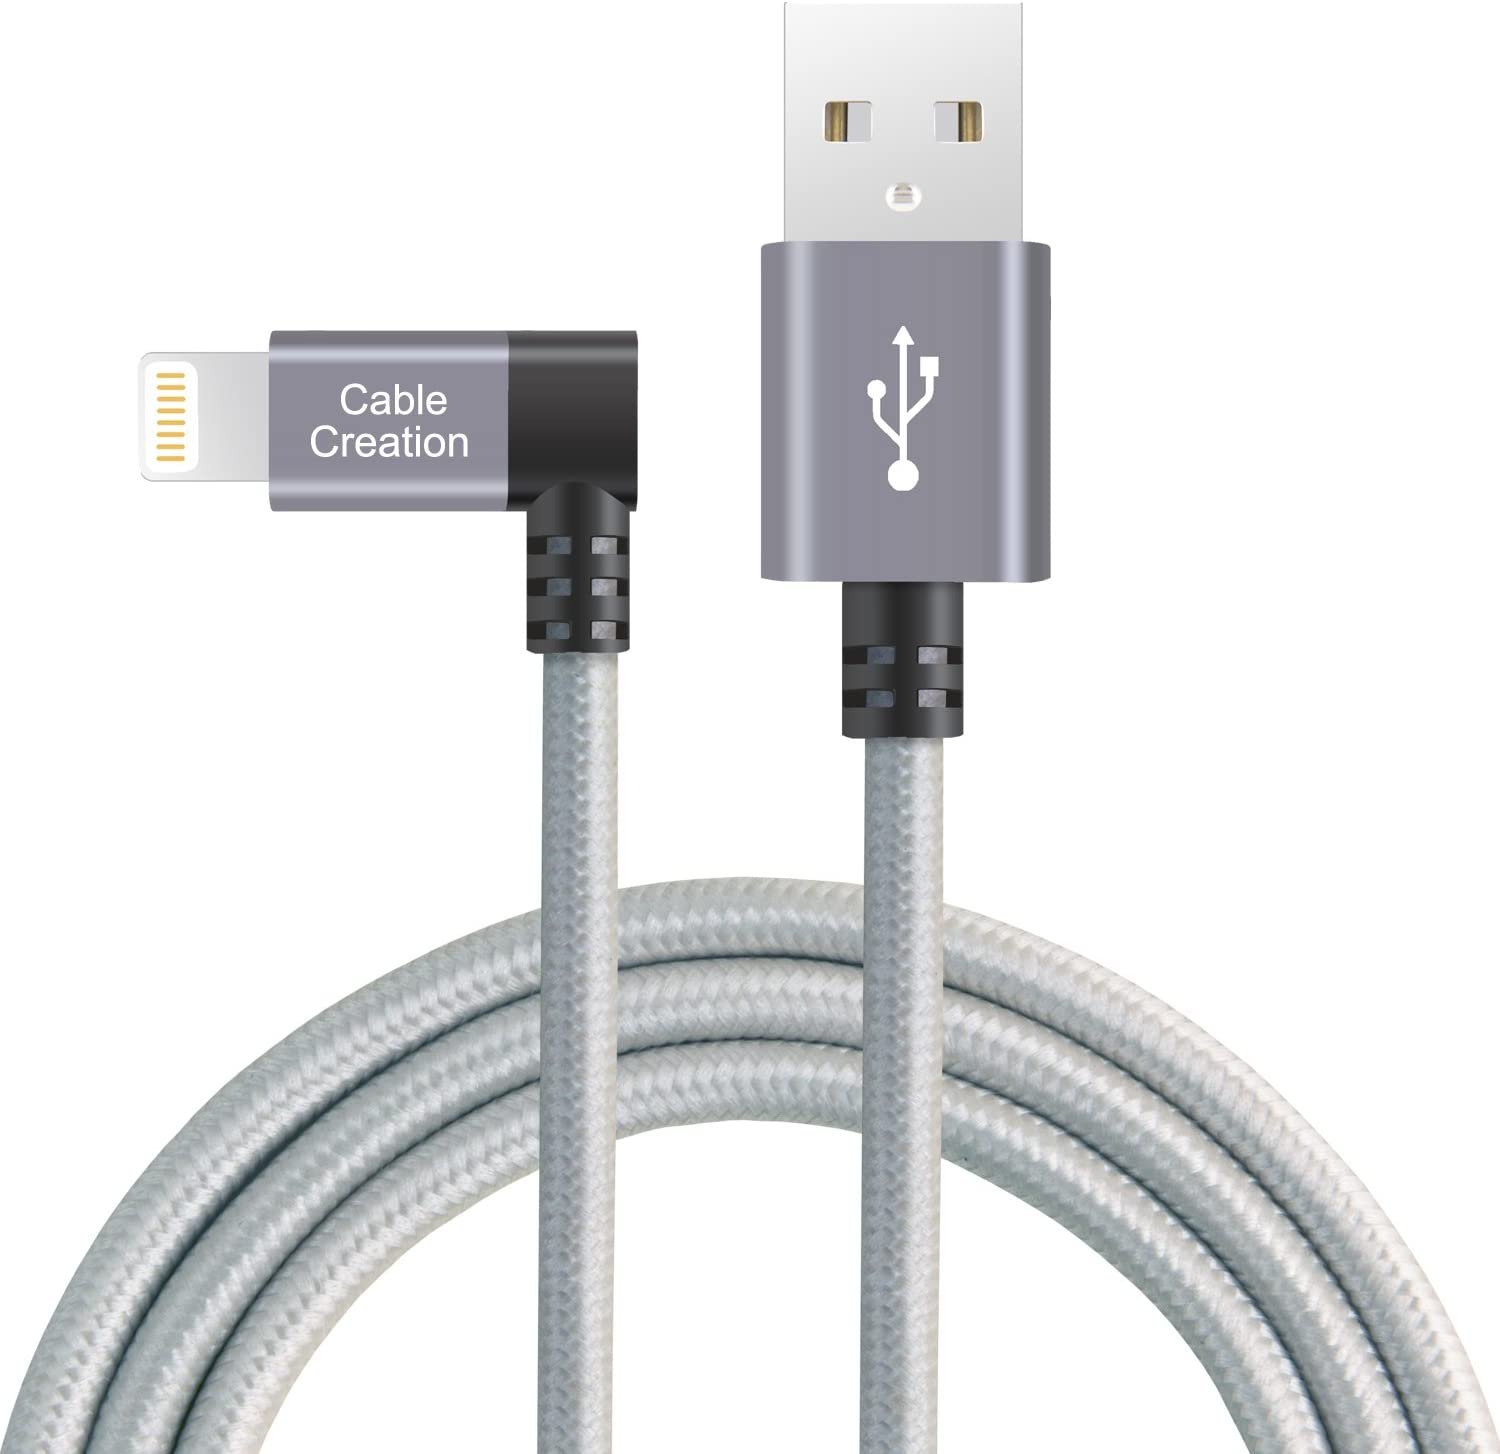 Angle Lightning to USB Data Sync Charge Cable, CableCreation 4 Feet 90 Degree iPhone Charger [MFi Certified], Compatible iPhone 12 11 Pro Max XR X Xs 8 7 Plus 6S 6 5 iPad iPod, Space Gray, 1.2 M